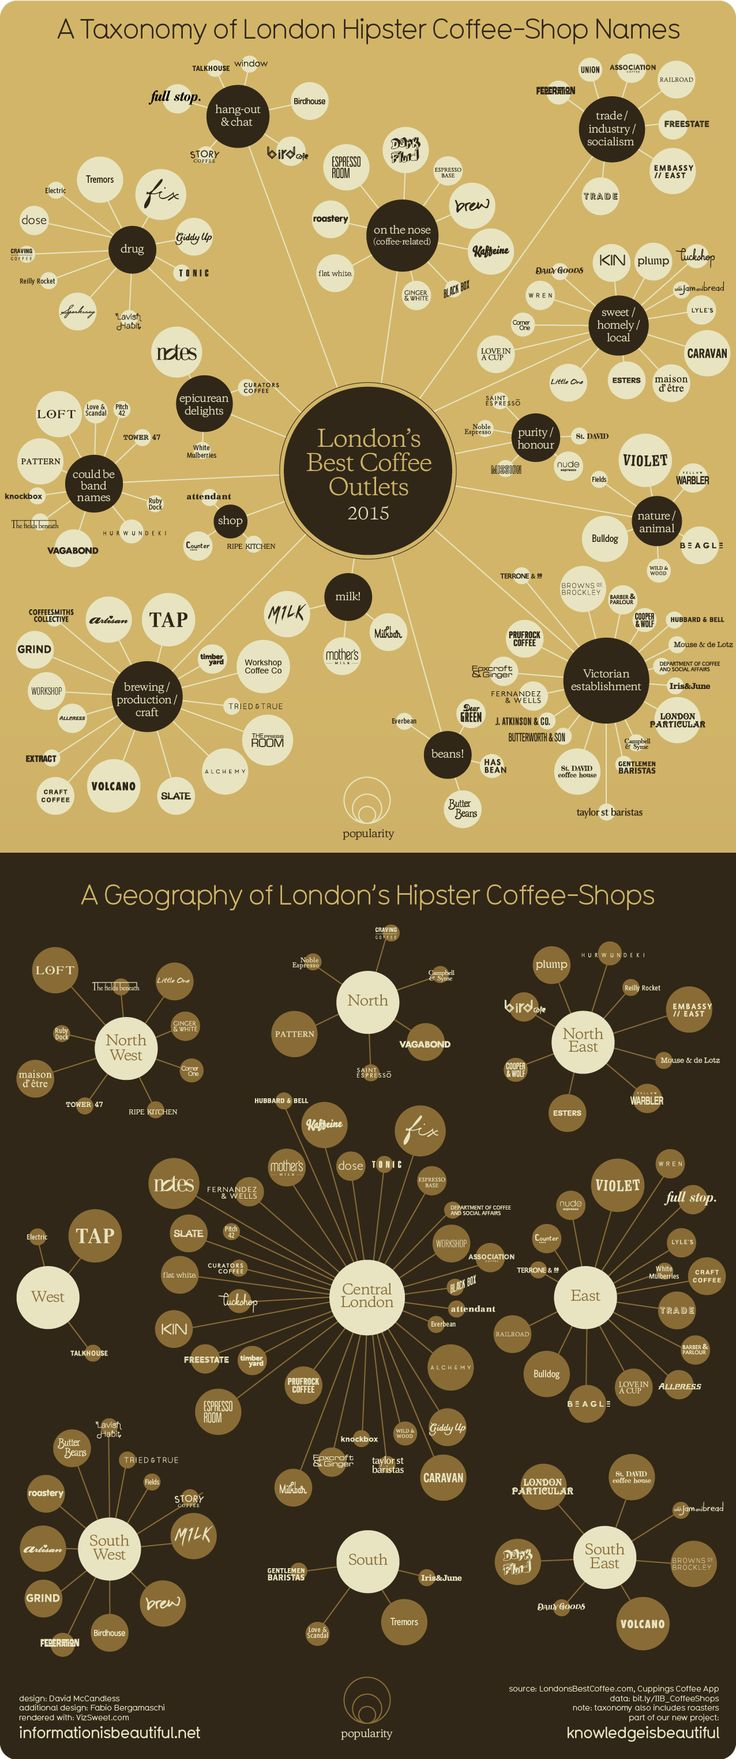 A Taxonomy of London Hipster Coffee-Shop Names - http://www.informationisbeautiful.net/visualizations/a-taxonomy-of-hipster-coffee-shop-names/